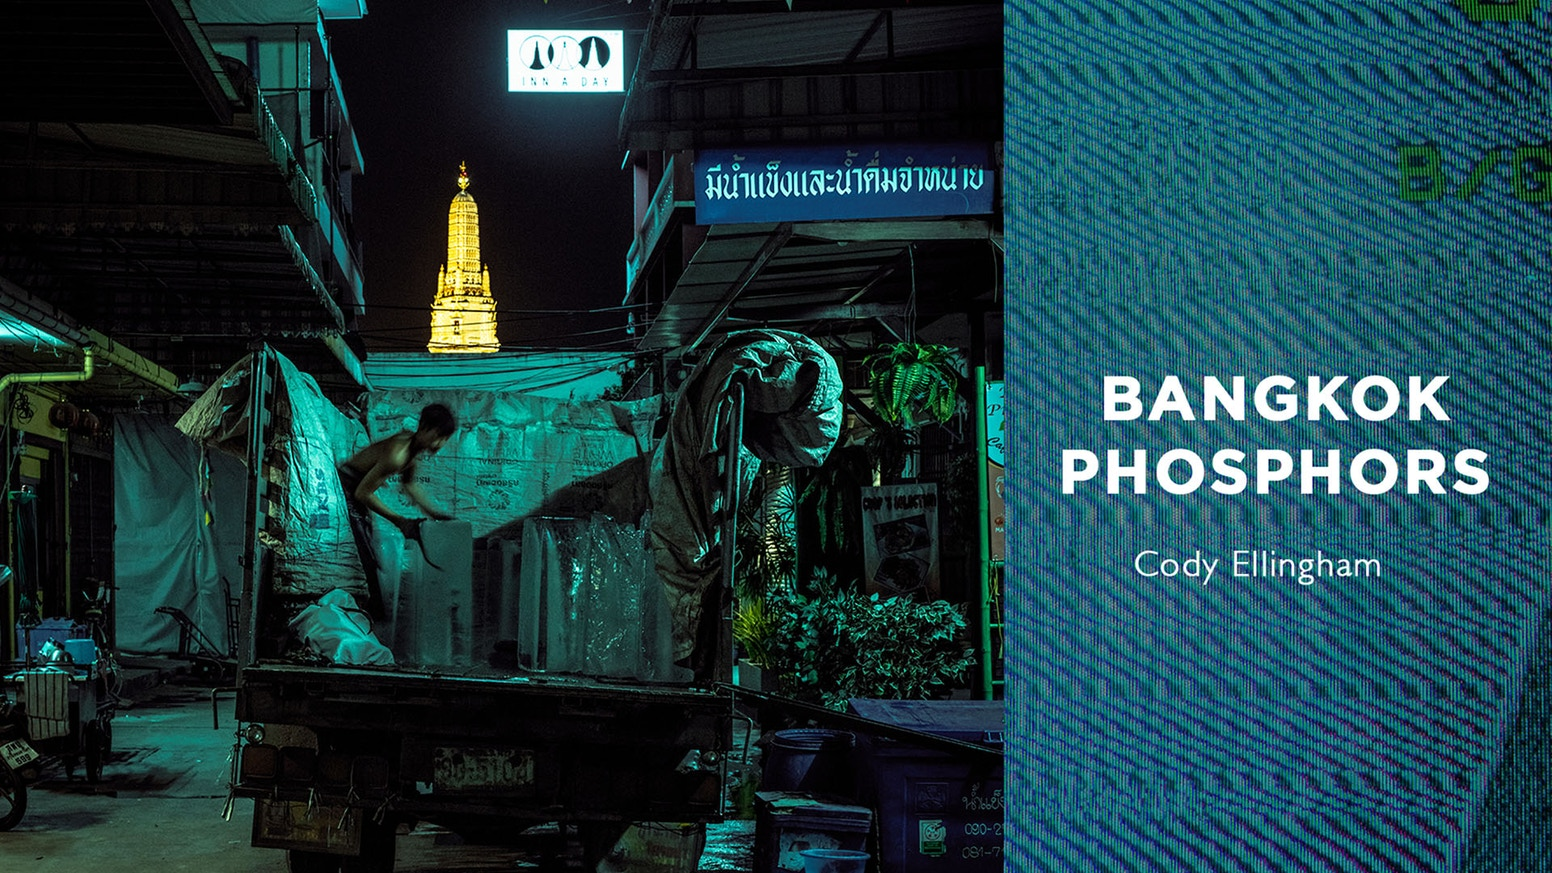 A wandering photographic journey through the old and new streets of nocturnal Bangkok.